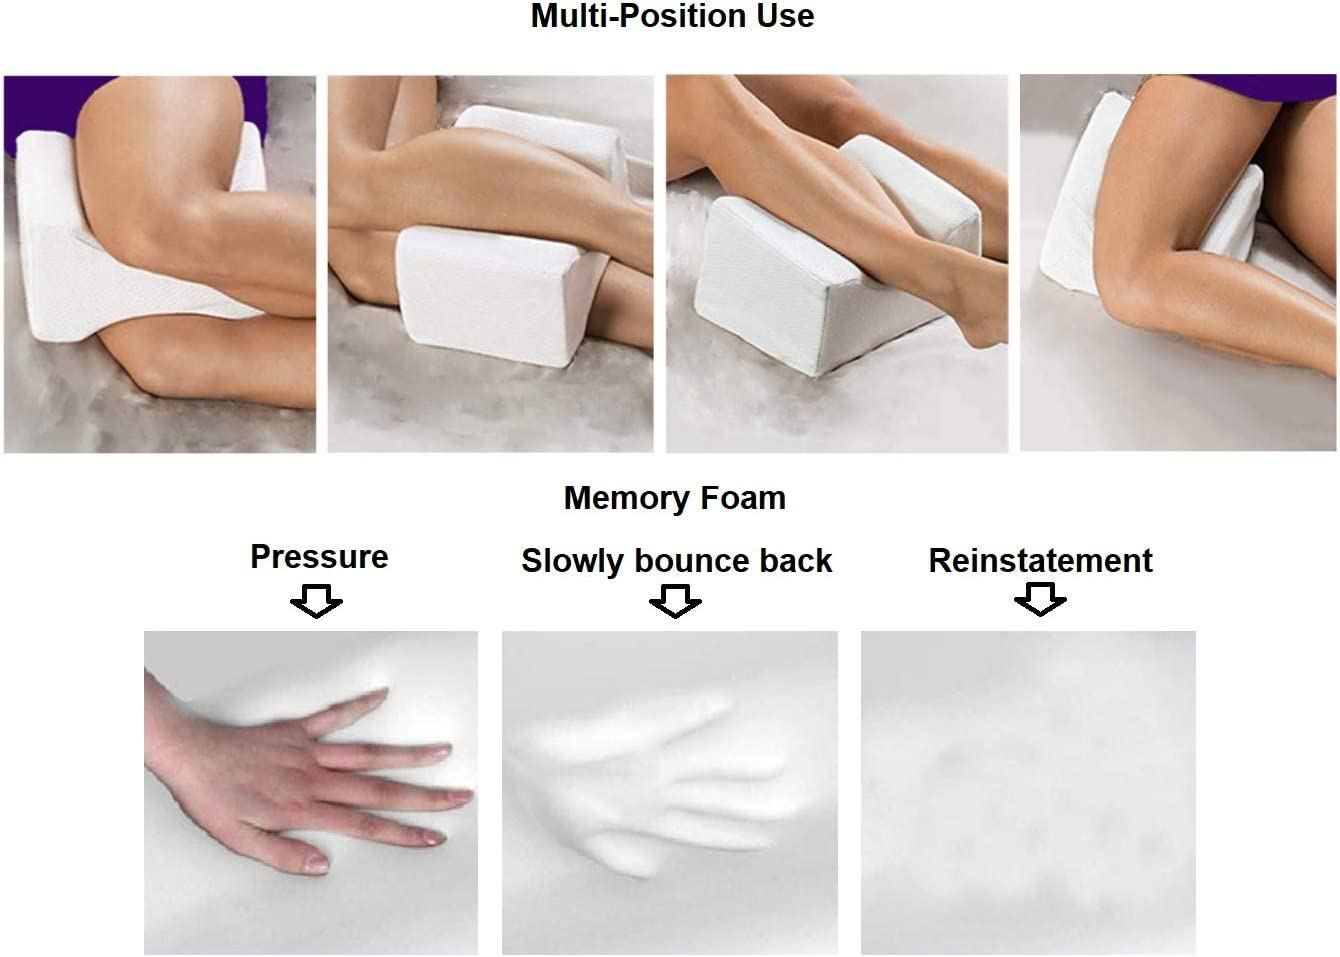 Pregnancy Back Pain Hip and Joint Pain Memory Foam Wedge Contour Leg Pain Cheer Comfort Orthopedic Knee Pillow for Sciatica Relief